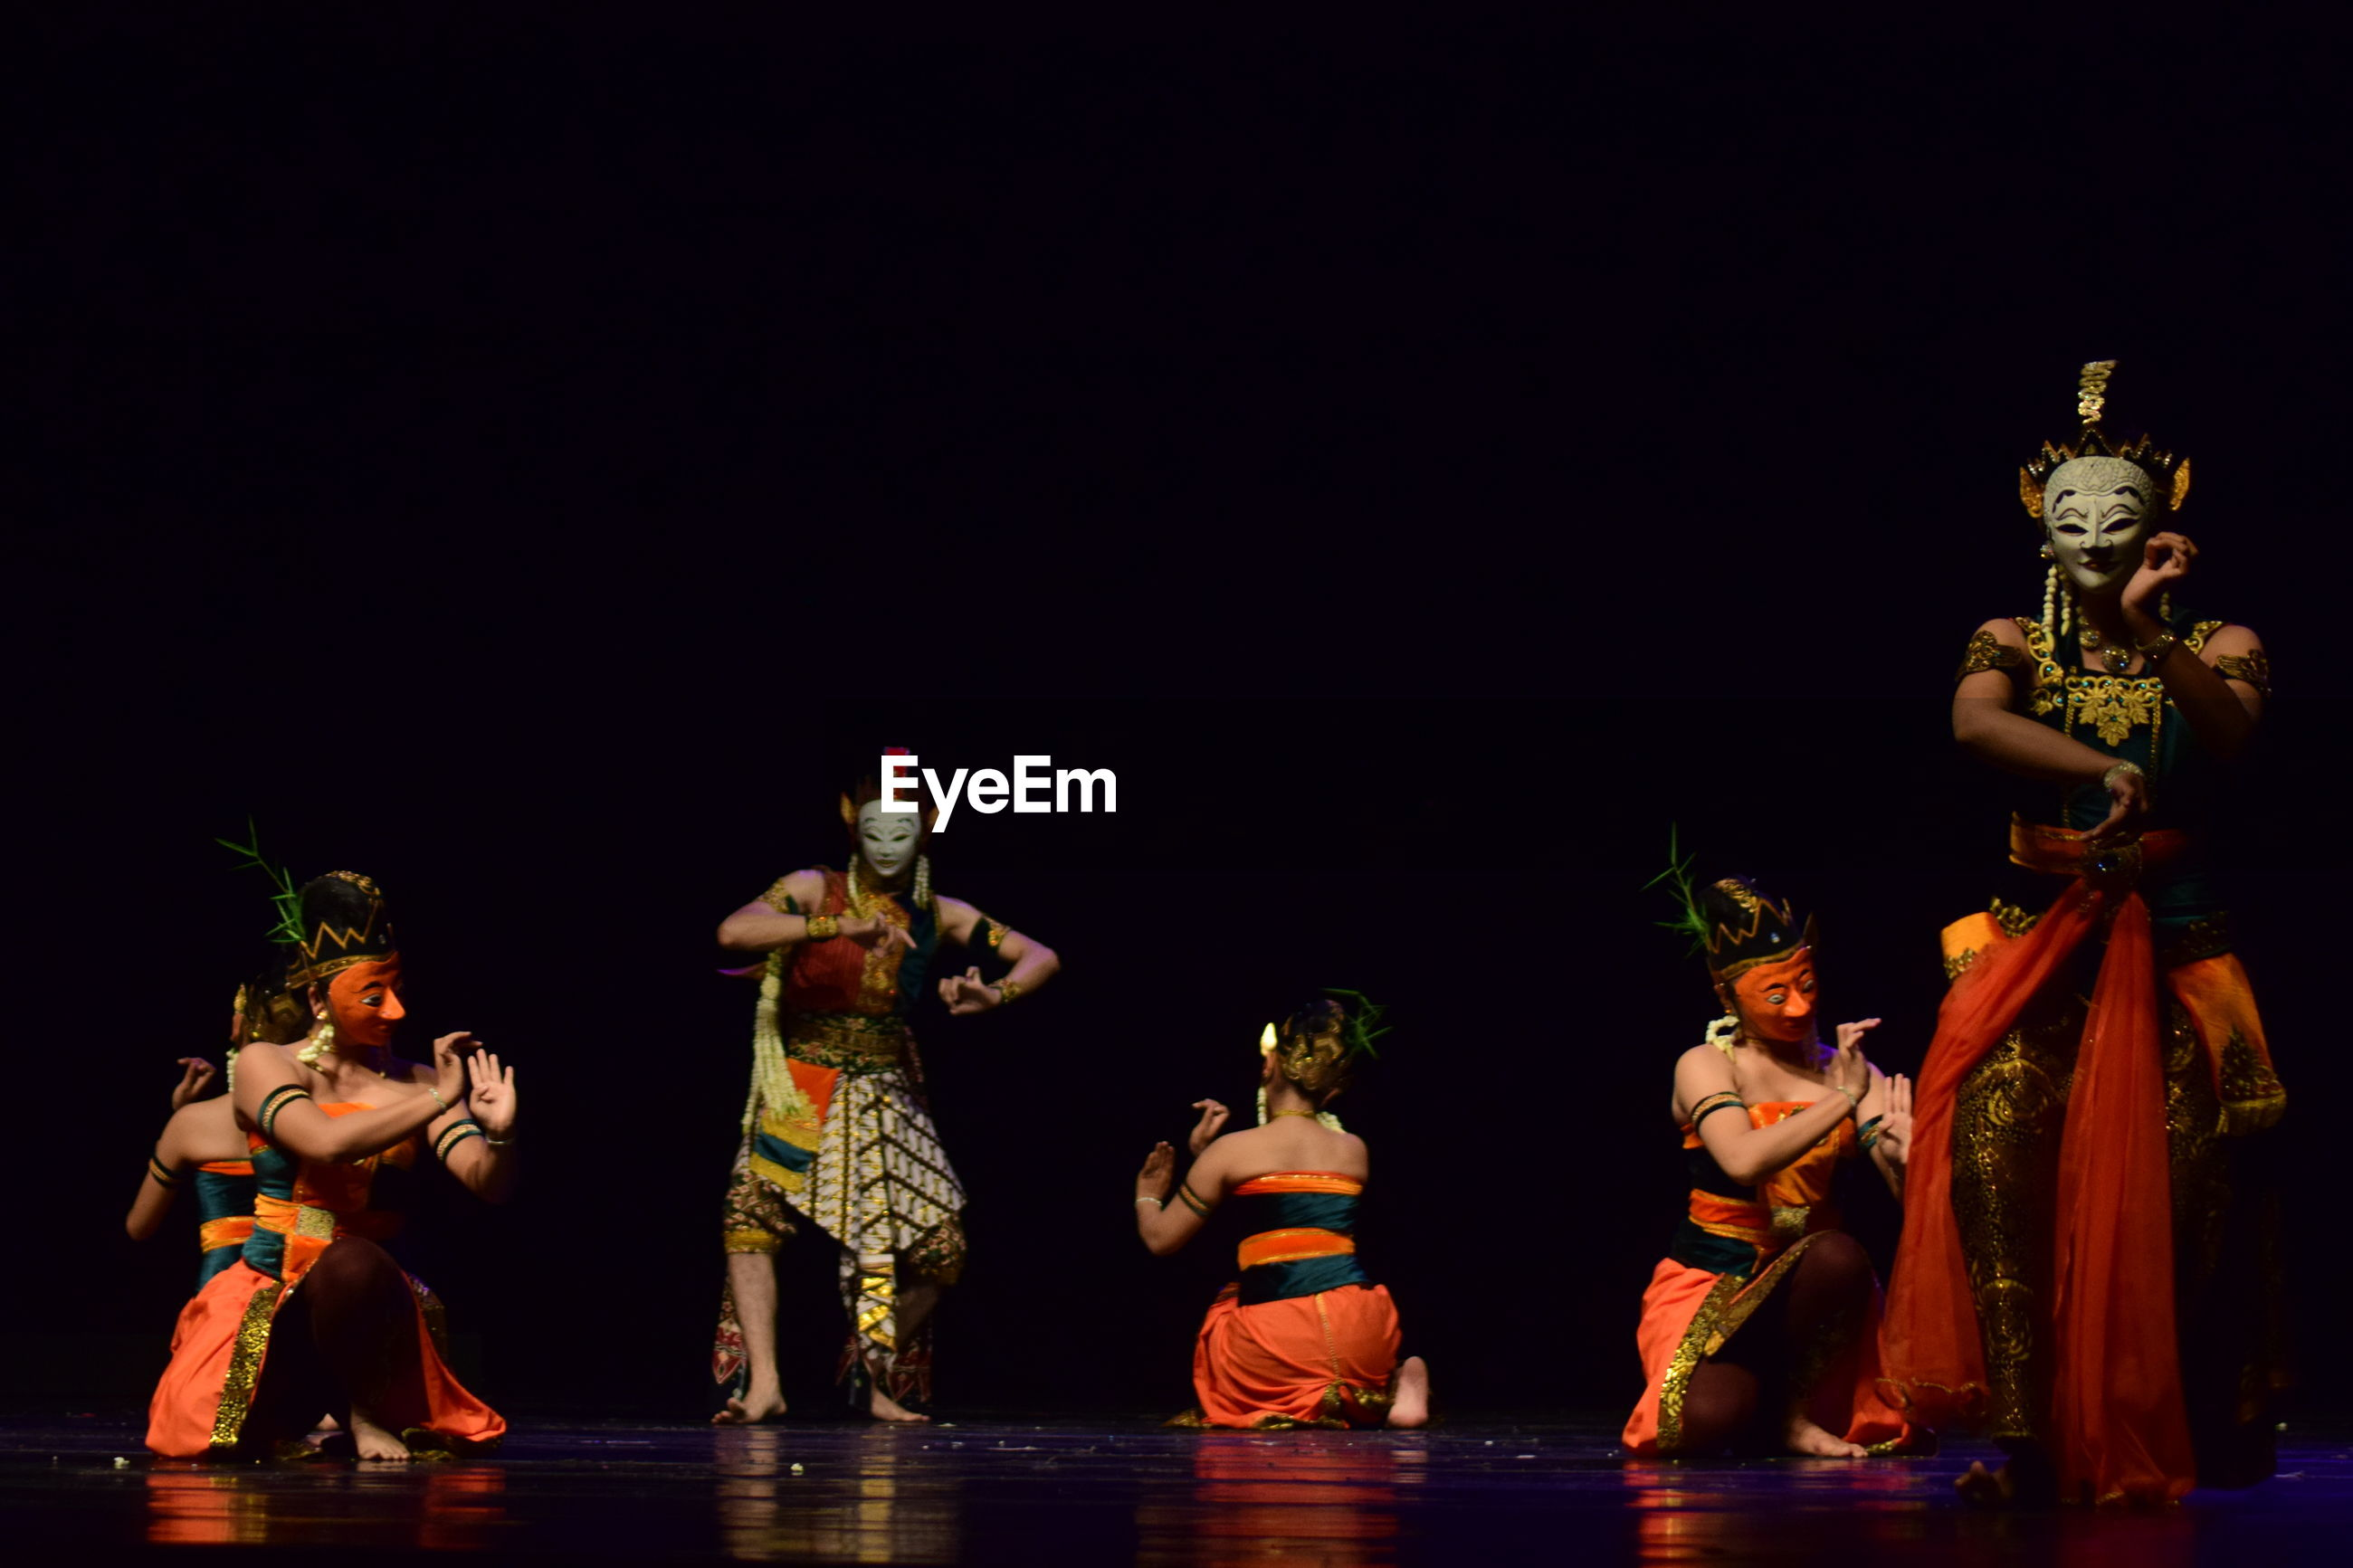 Dancers wearing traditional clothing while dancing against black background